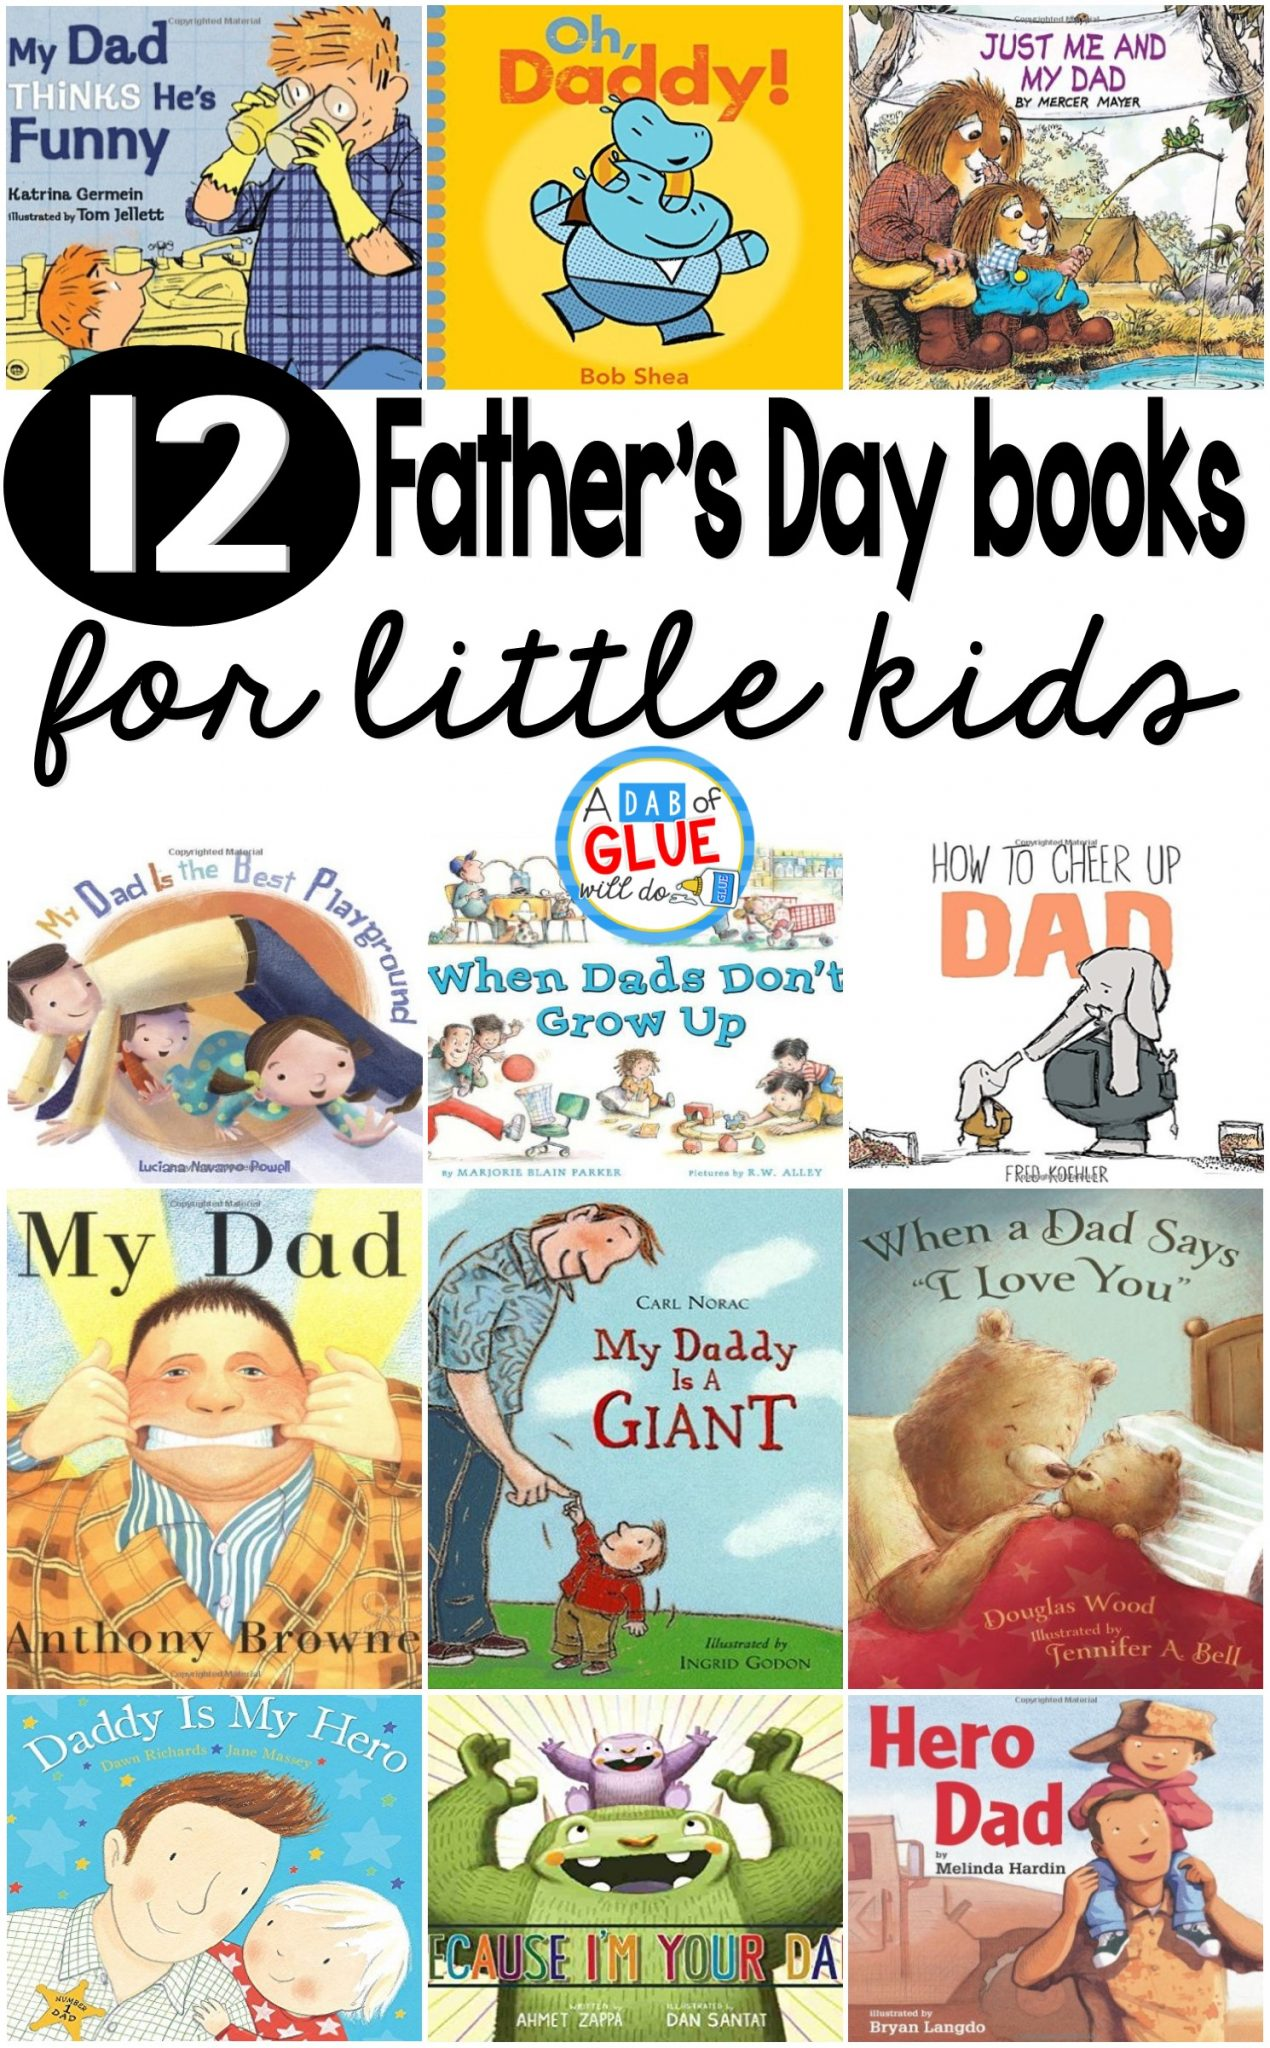 12 Father's Day Books For Little Kids